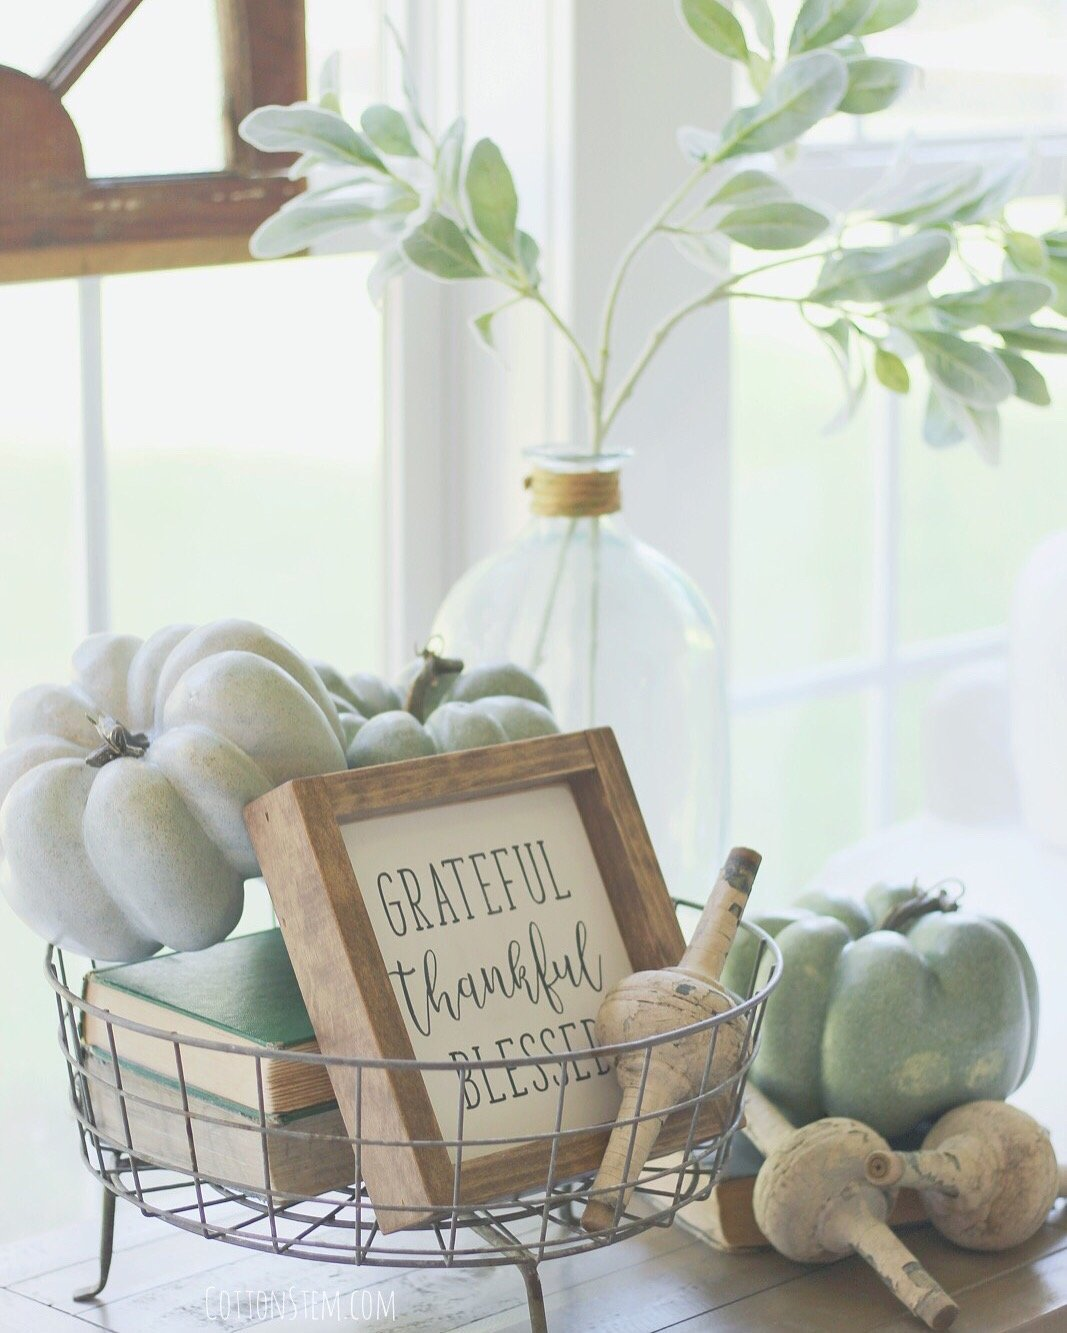 CottonStem.com farmhouse decor fall pumpkins